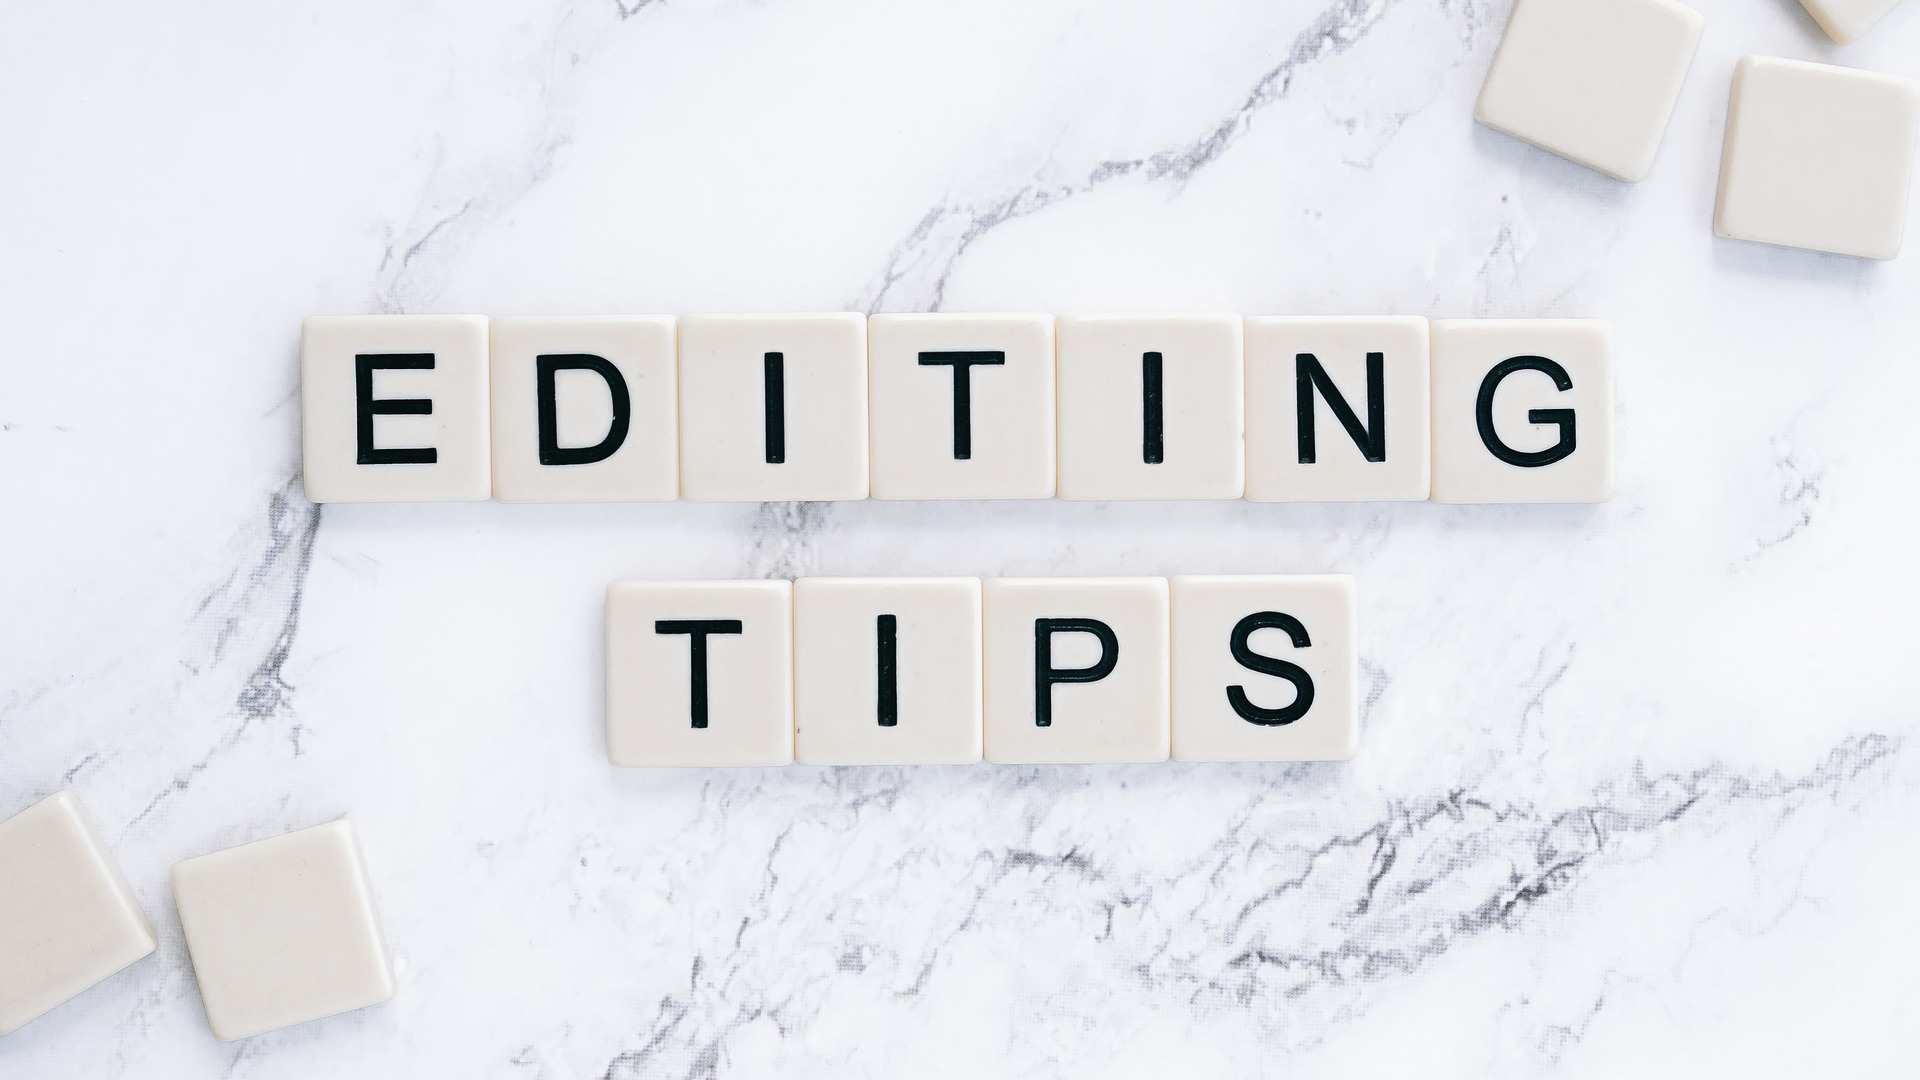 Letter tiles that spell out editing tips